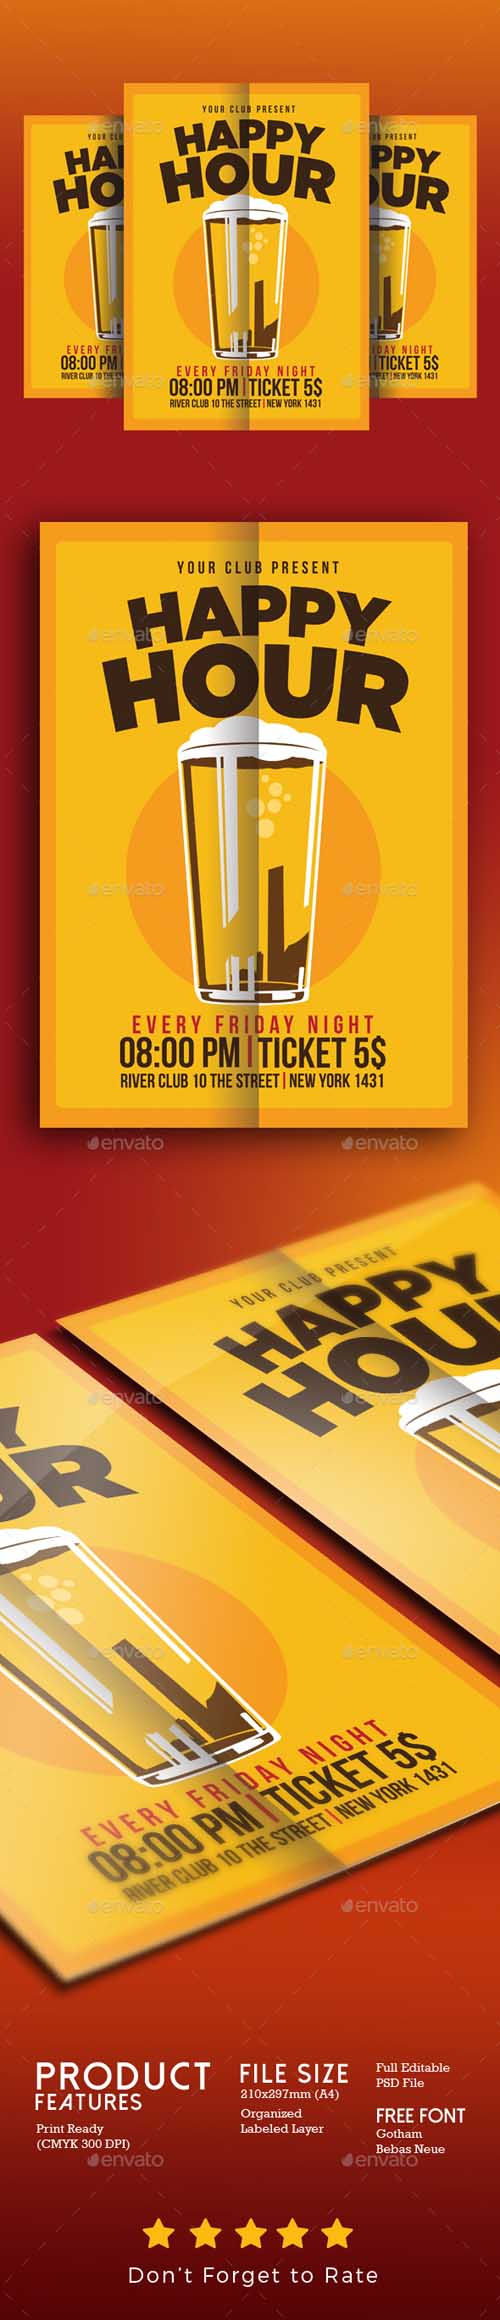 Happy Hour Beer Promo 17328854